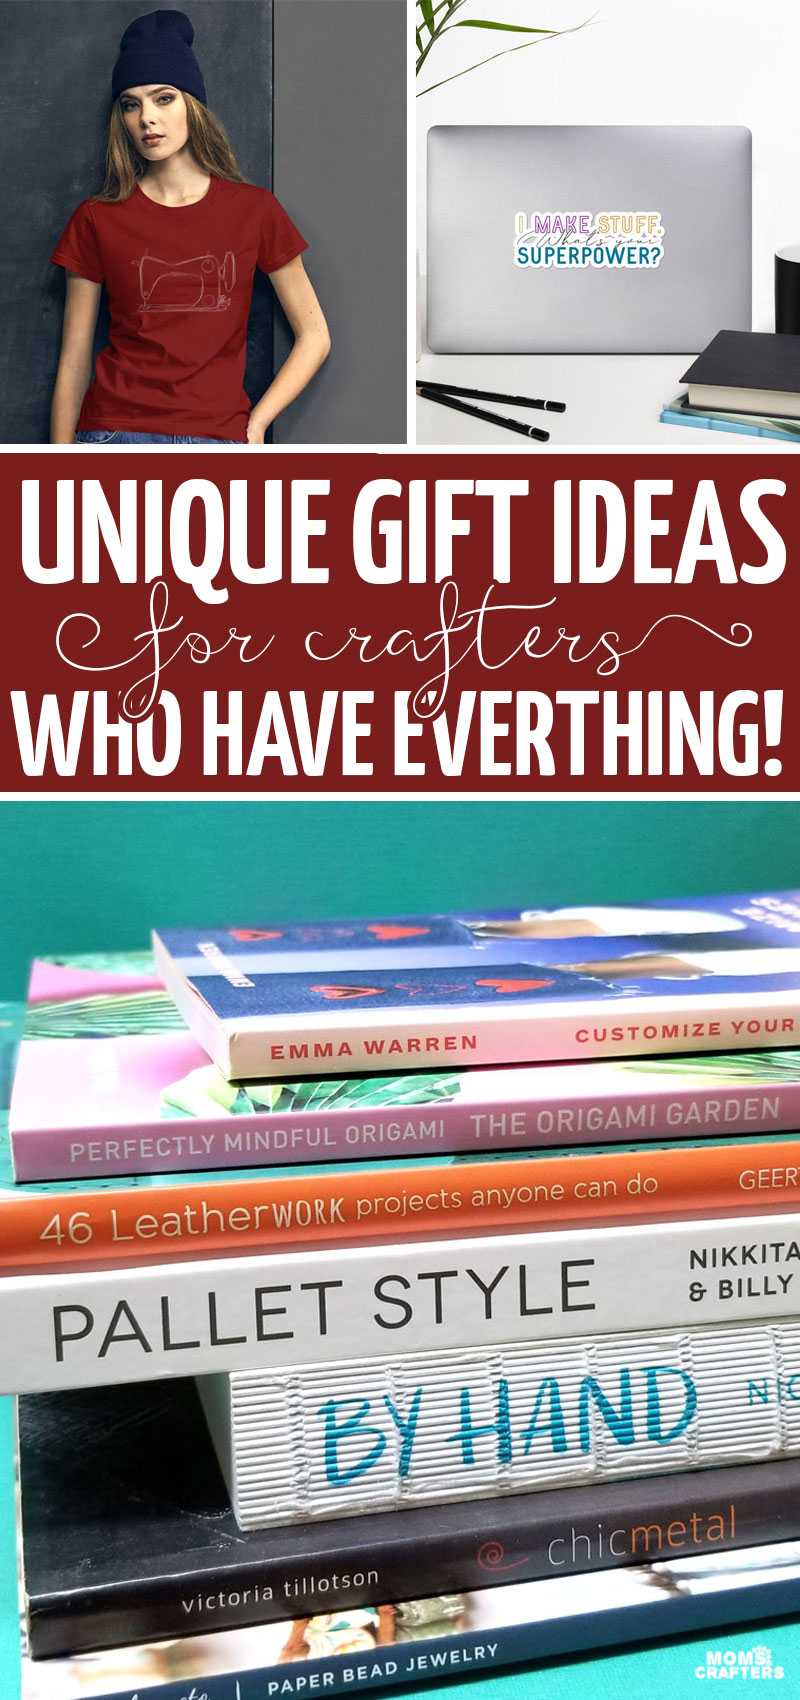 20+ Gifts for the crafter who has everything - these craft gifts are perfect for creatives, craft rooms, people who want craft books and more!